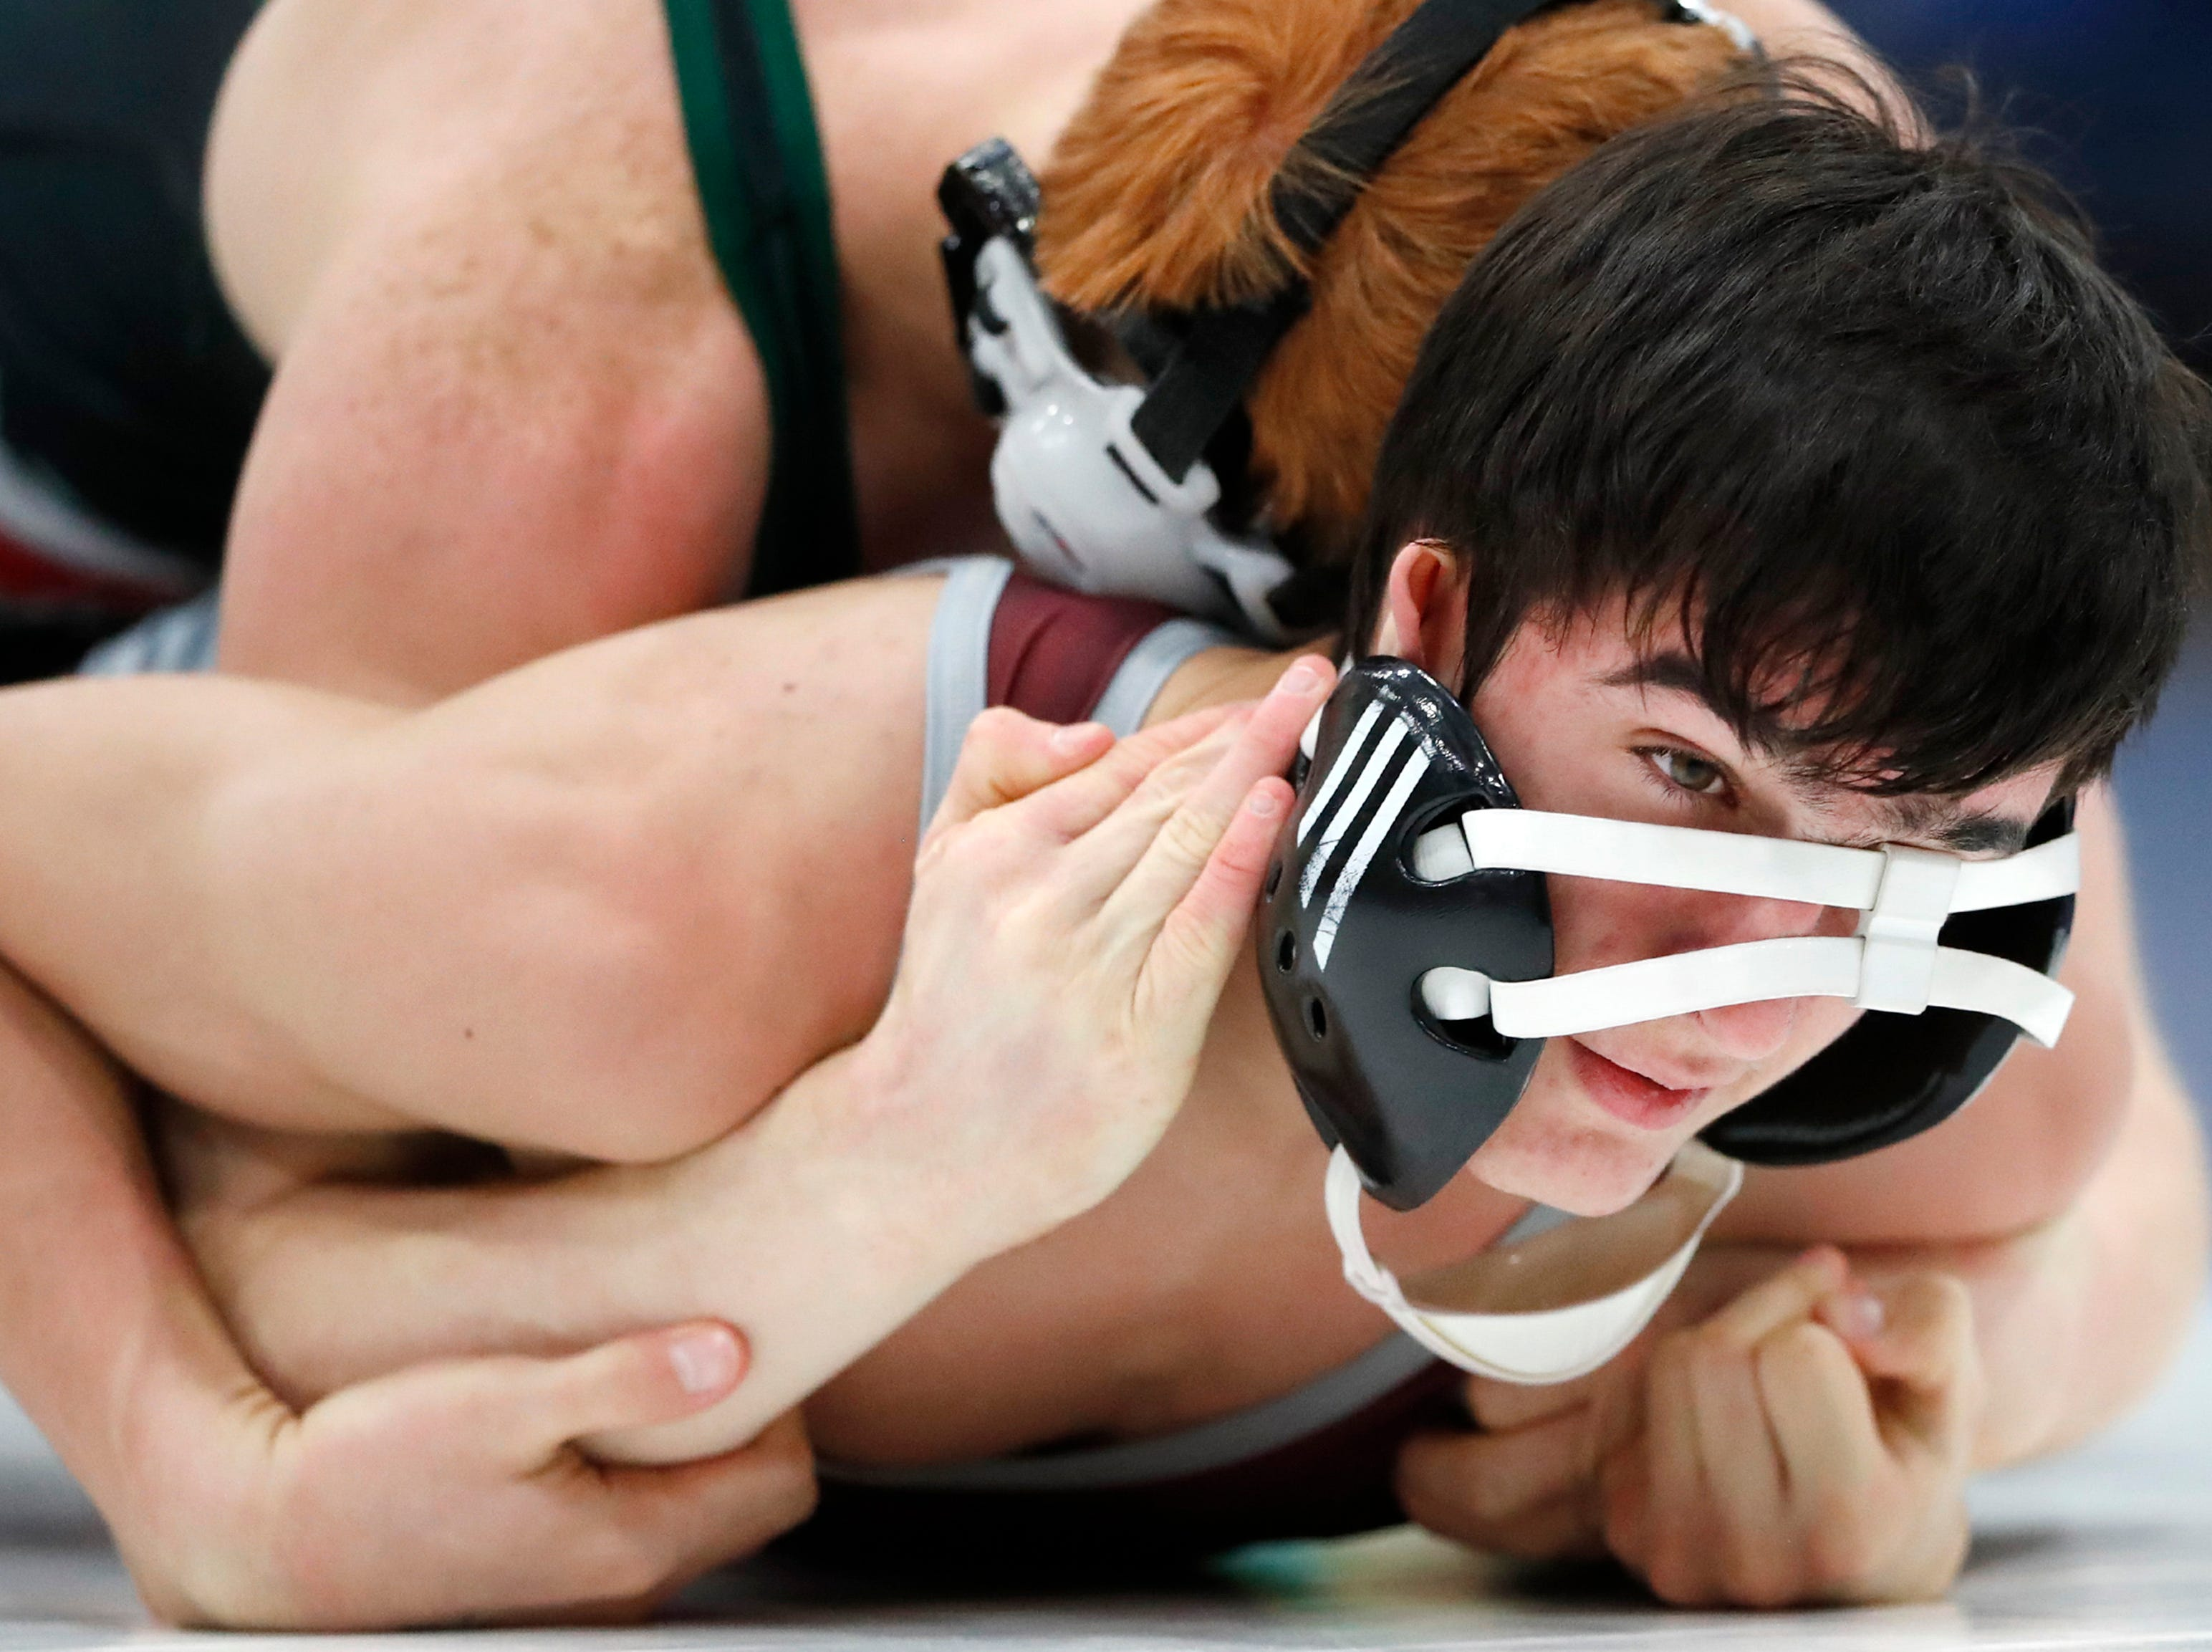 Berlin's Scott McGibbon holds down Winneconne's Sonny Barone as his headgear slides down his face during their 132-pound match in the D2 wrestling regional Saturday Feb. 9, 2019, in Little Chute, Wis.